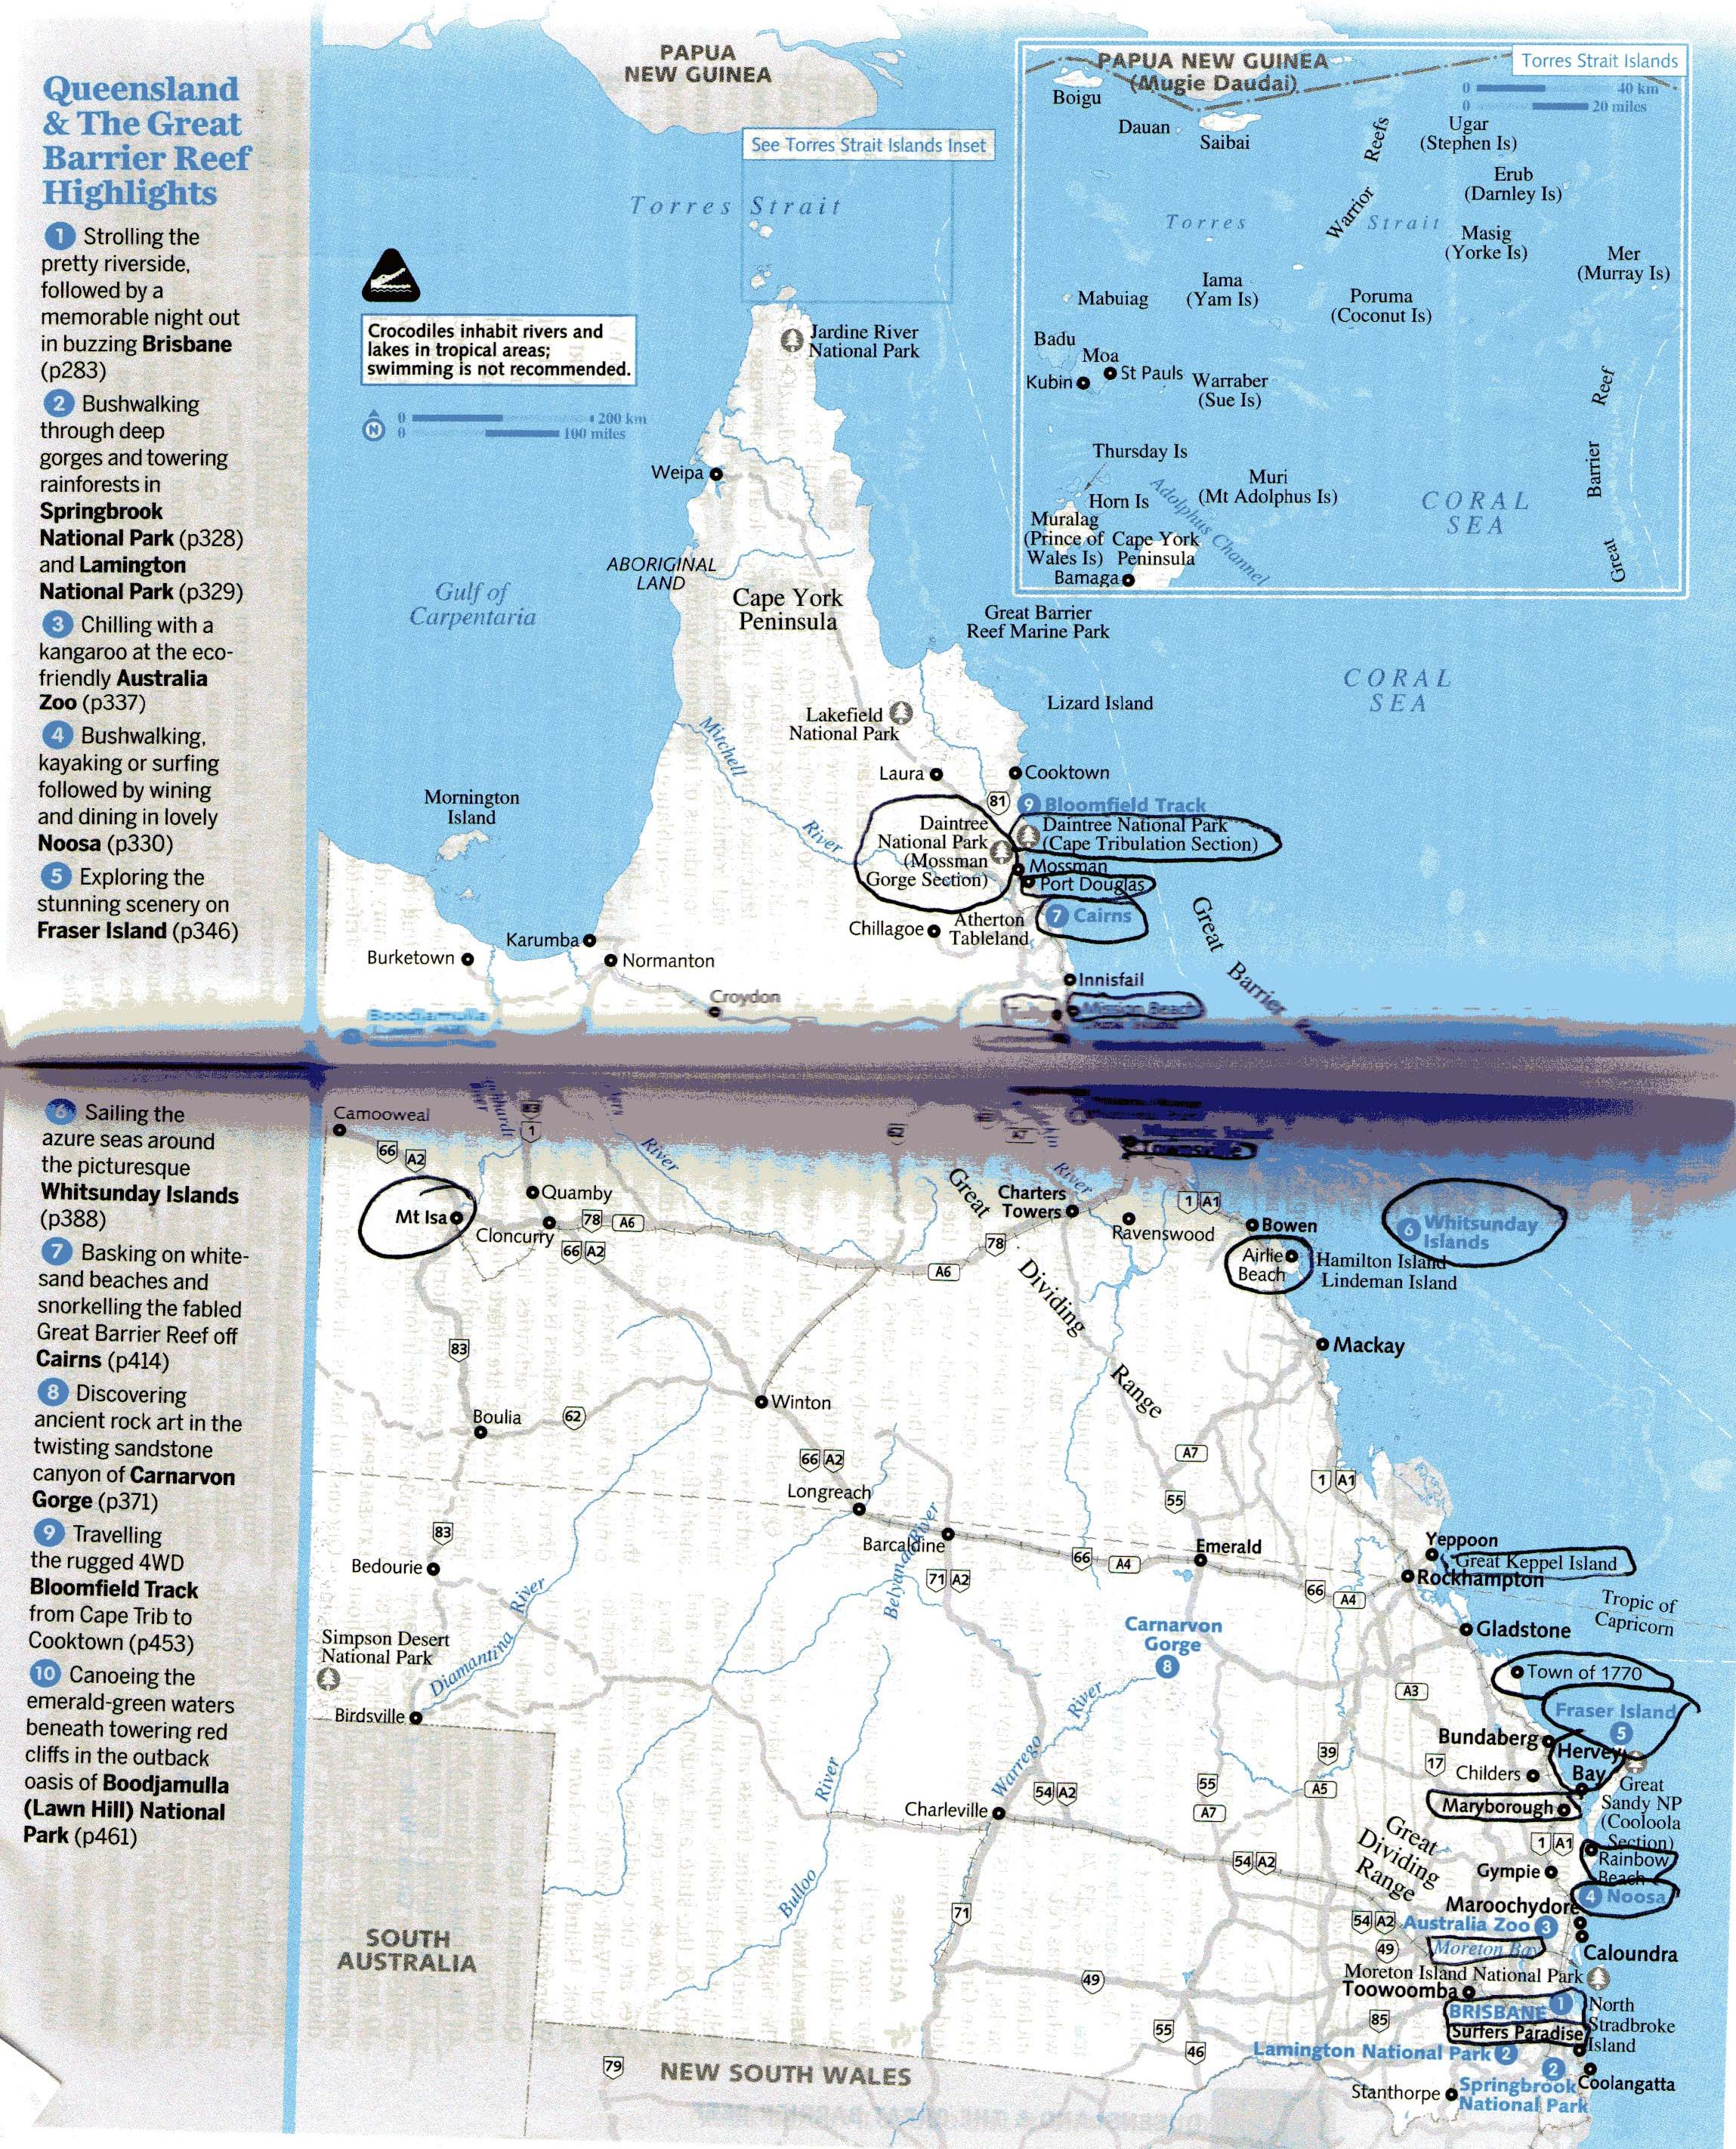 how to get a surfboard from cairns to wollongong